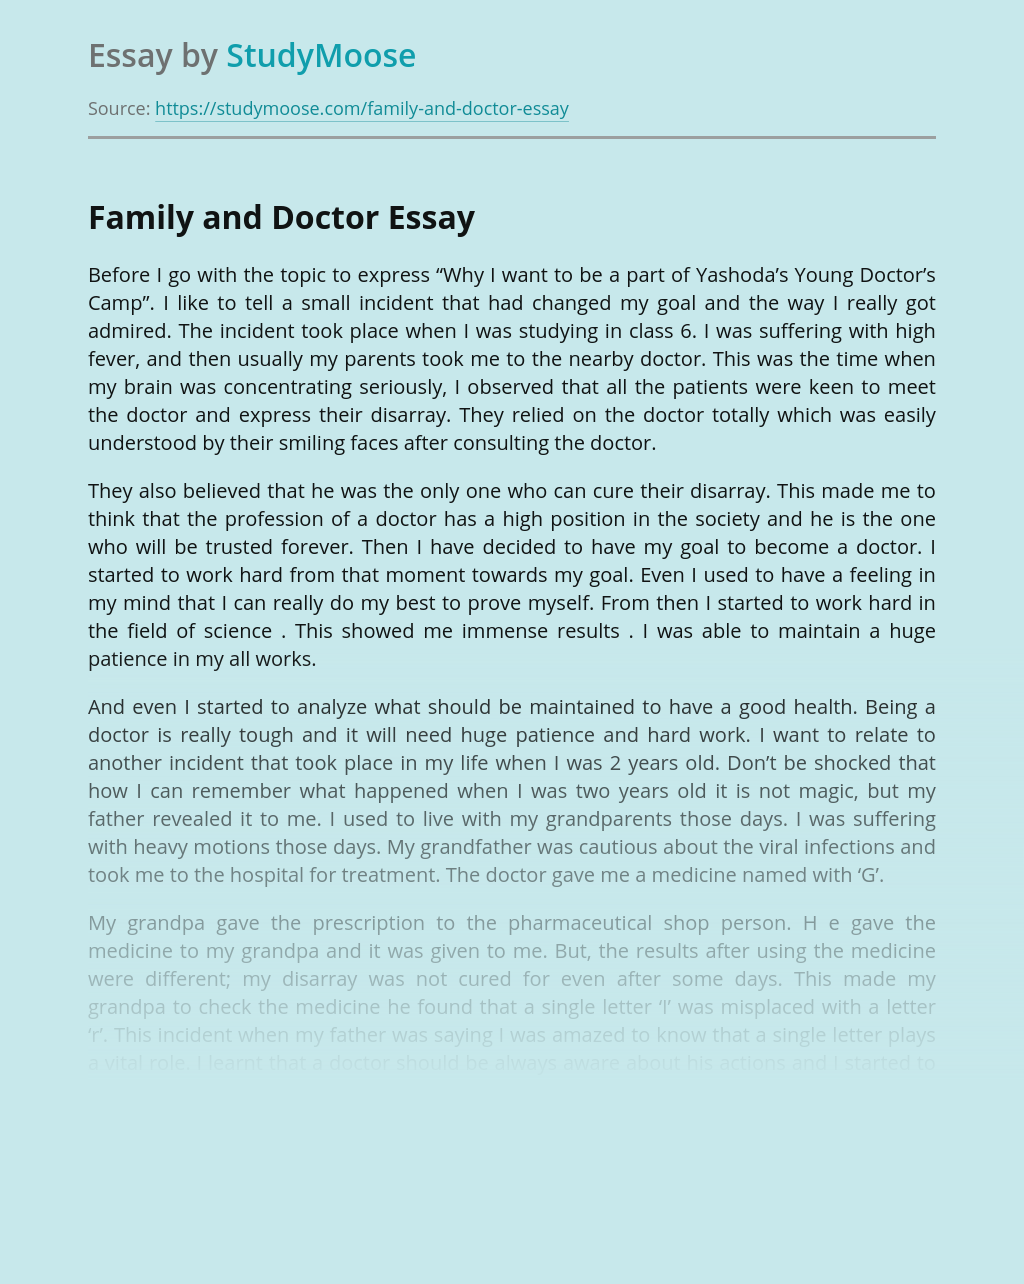 Family and Doctor